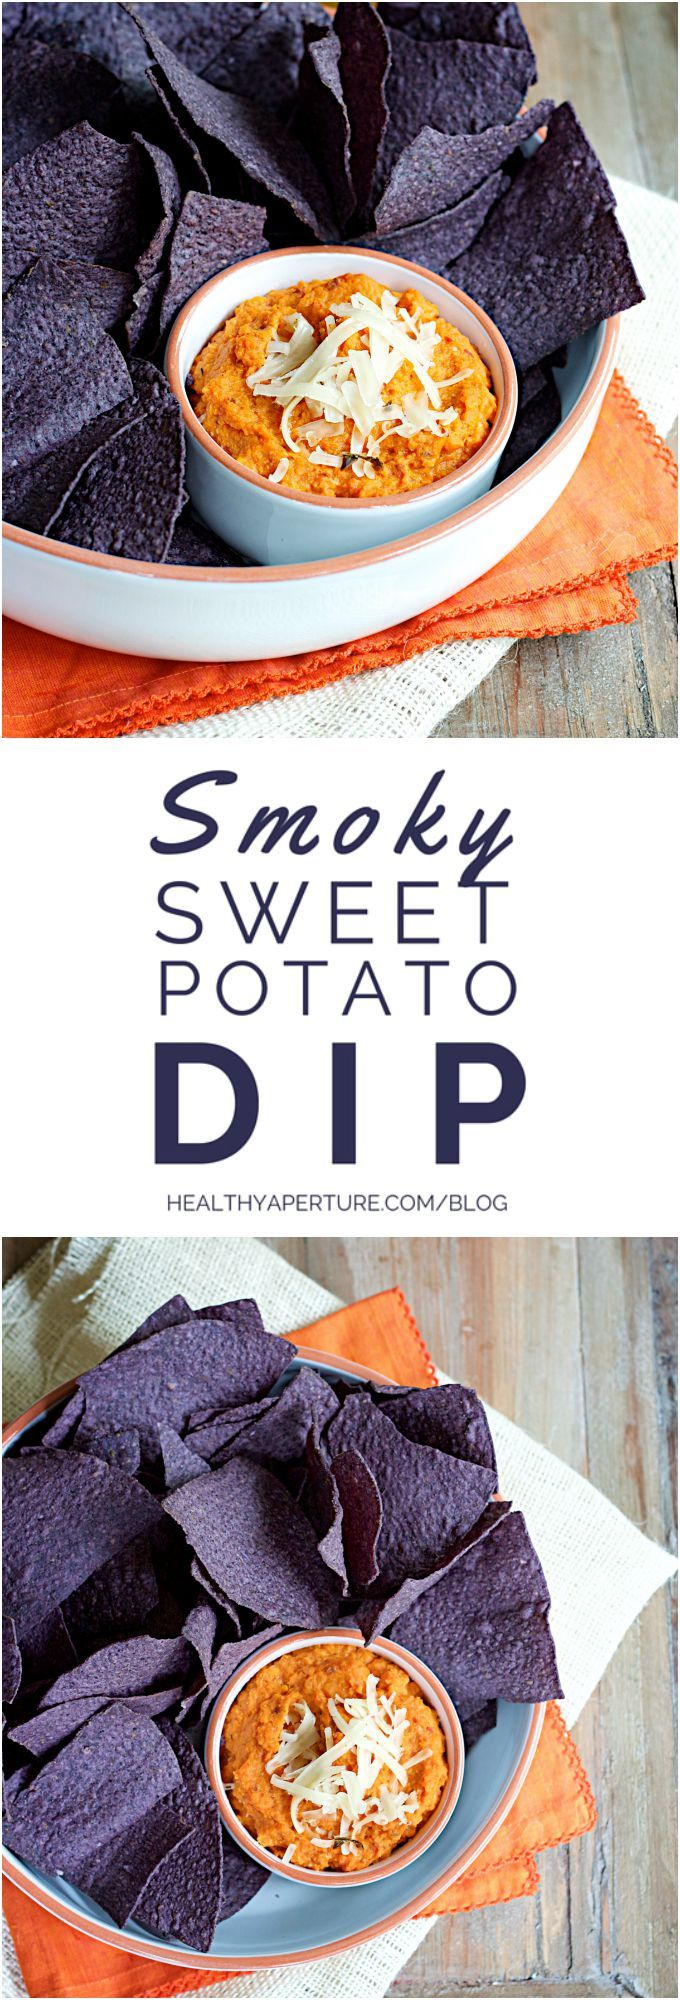 A unique twist on traditional tailgating recipes, this 5 Ingredient, quick and easy Smoky Sweet Potato Dip is healthy upgrade for your gameday spread. Recipe by @ReganJonesRD on HealthyAperture.com.